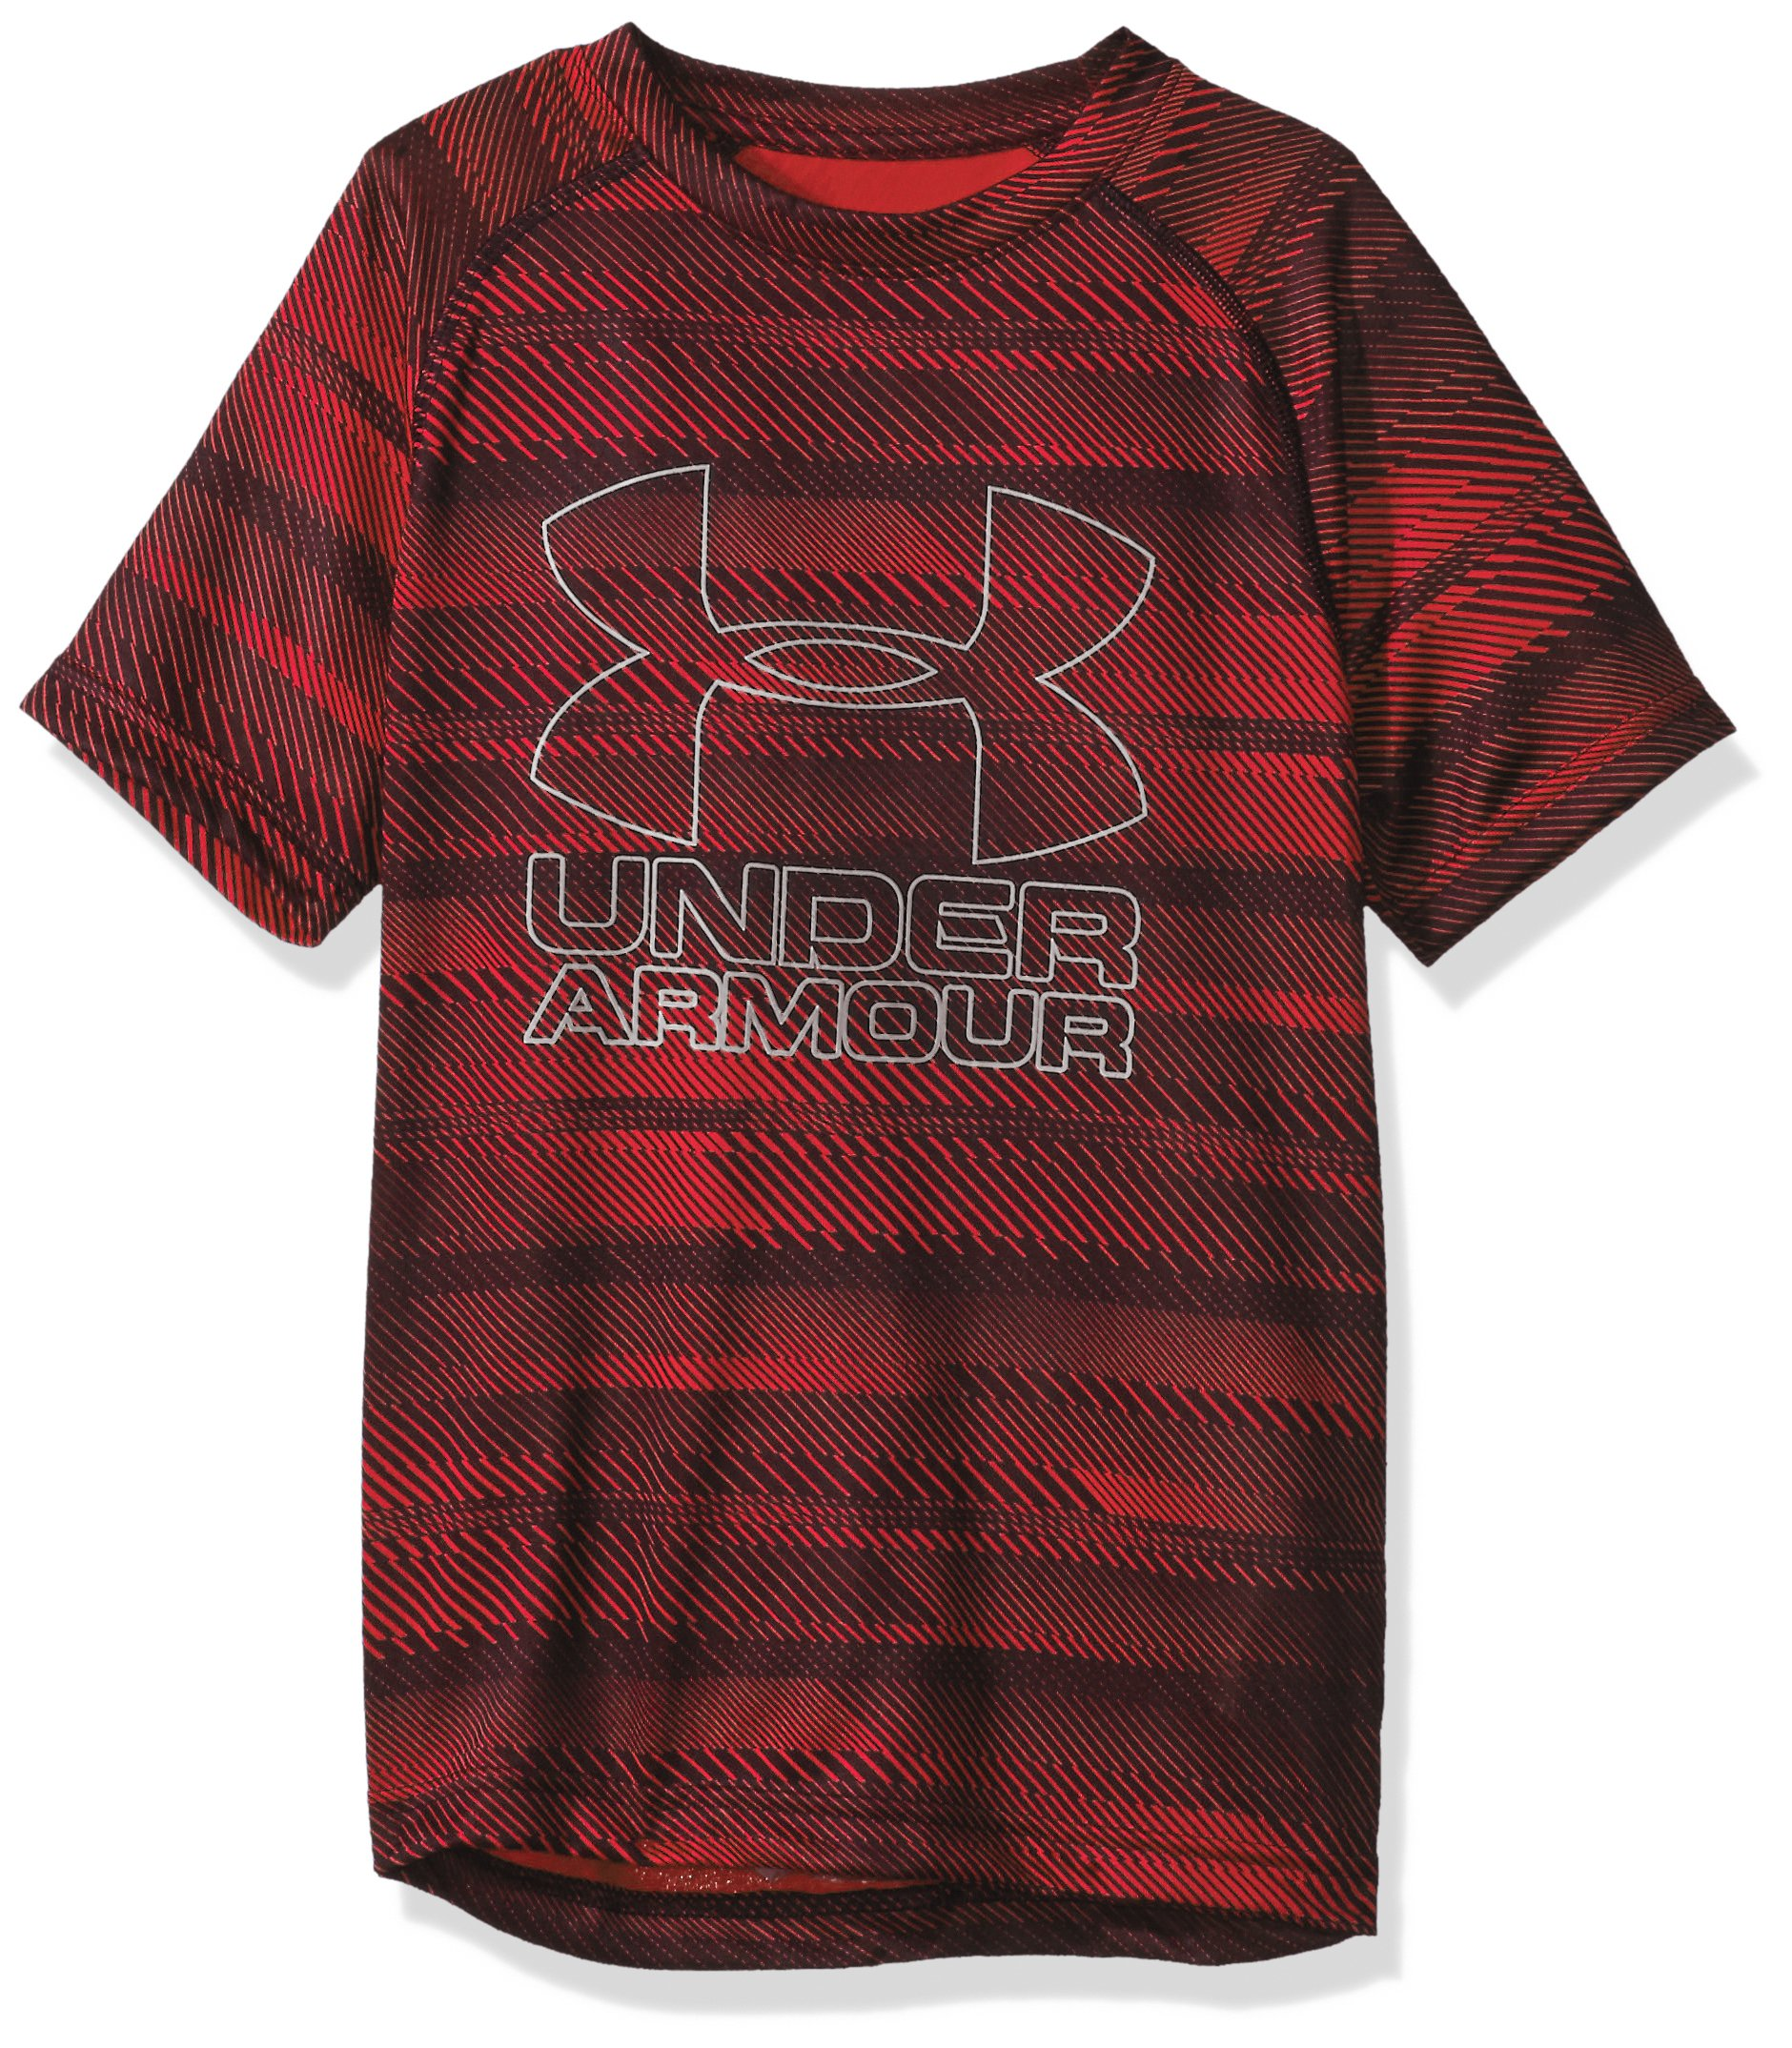 Under Armour Boys Big Logo Printed T-Shirt,Red /ST-Shirtl, Youth X-Small